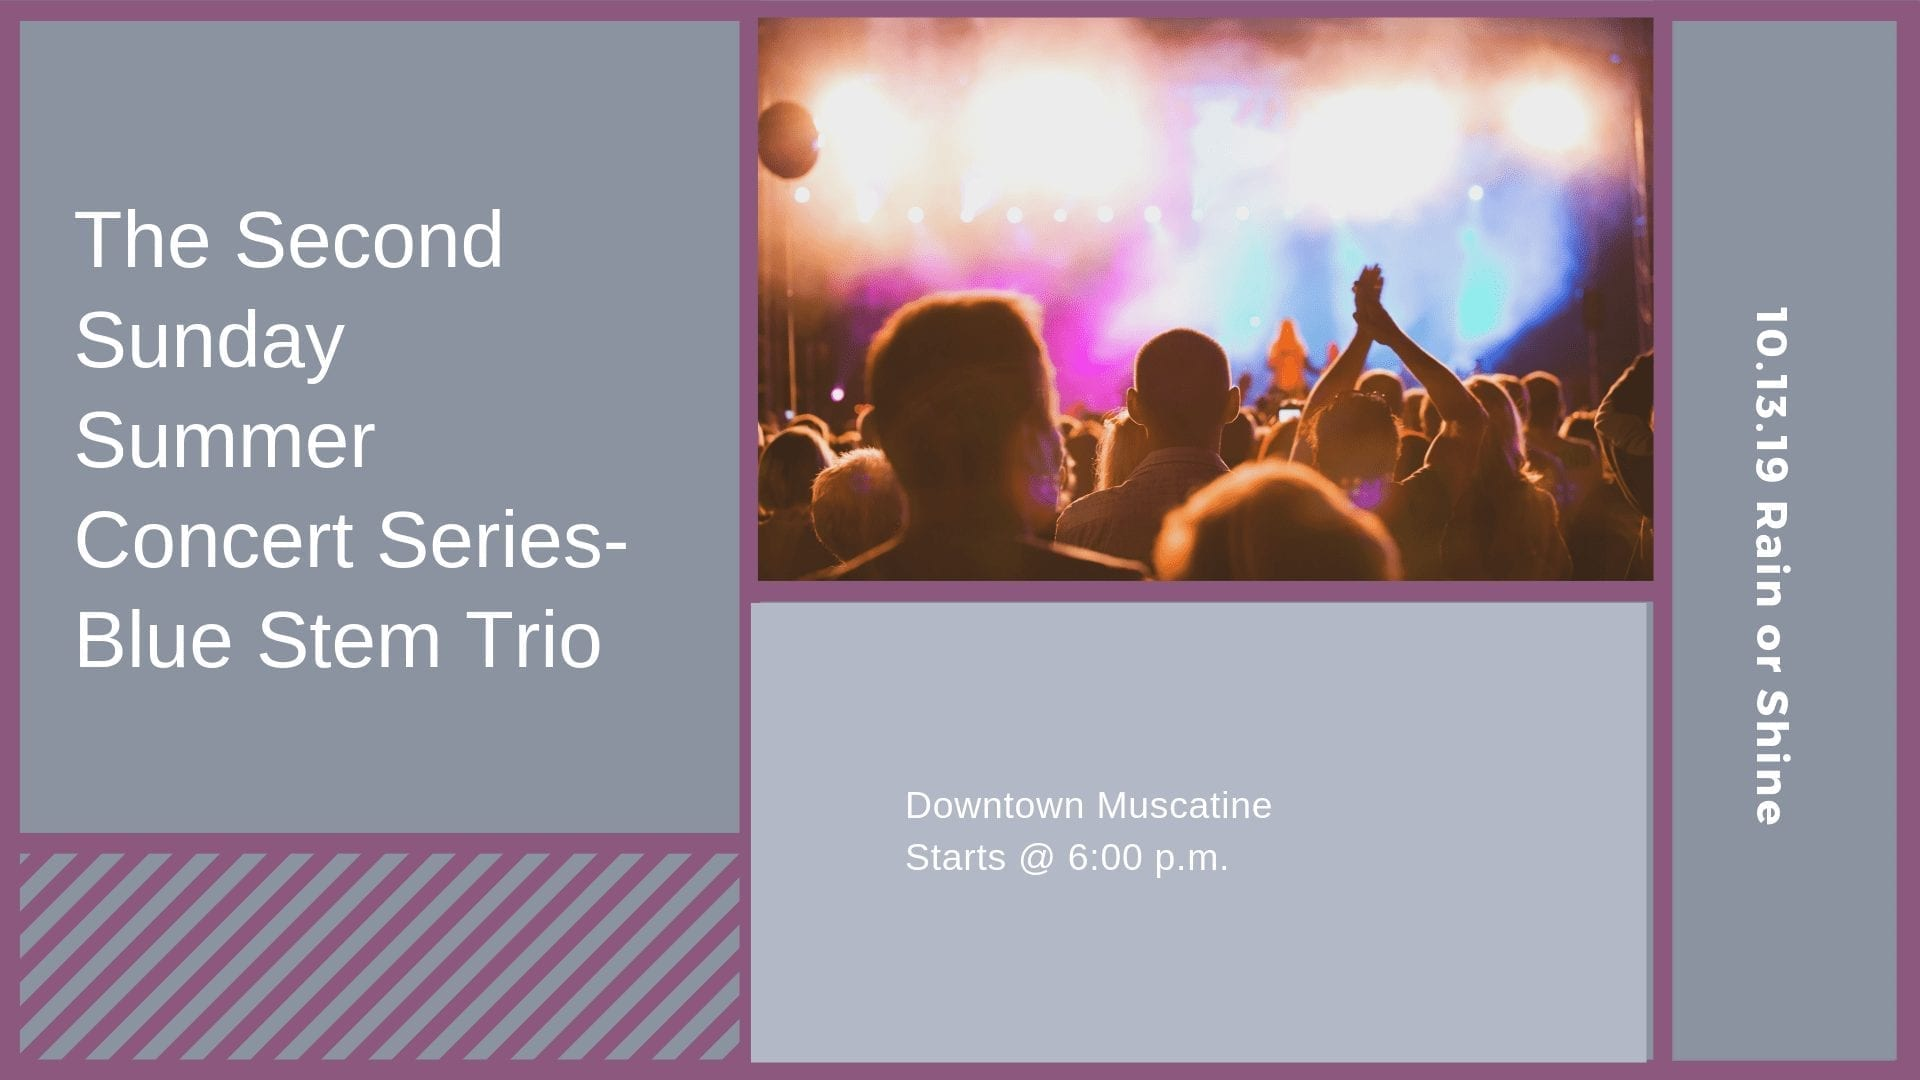 The Second Sunday Summer Concert Series-